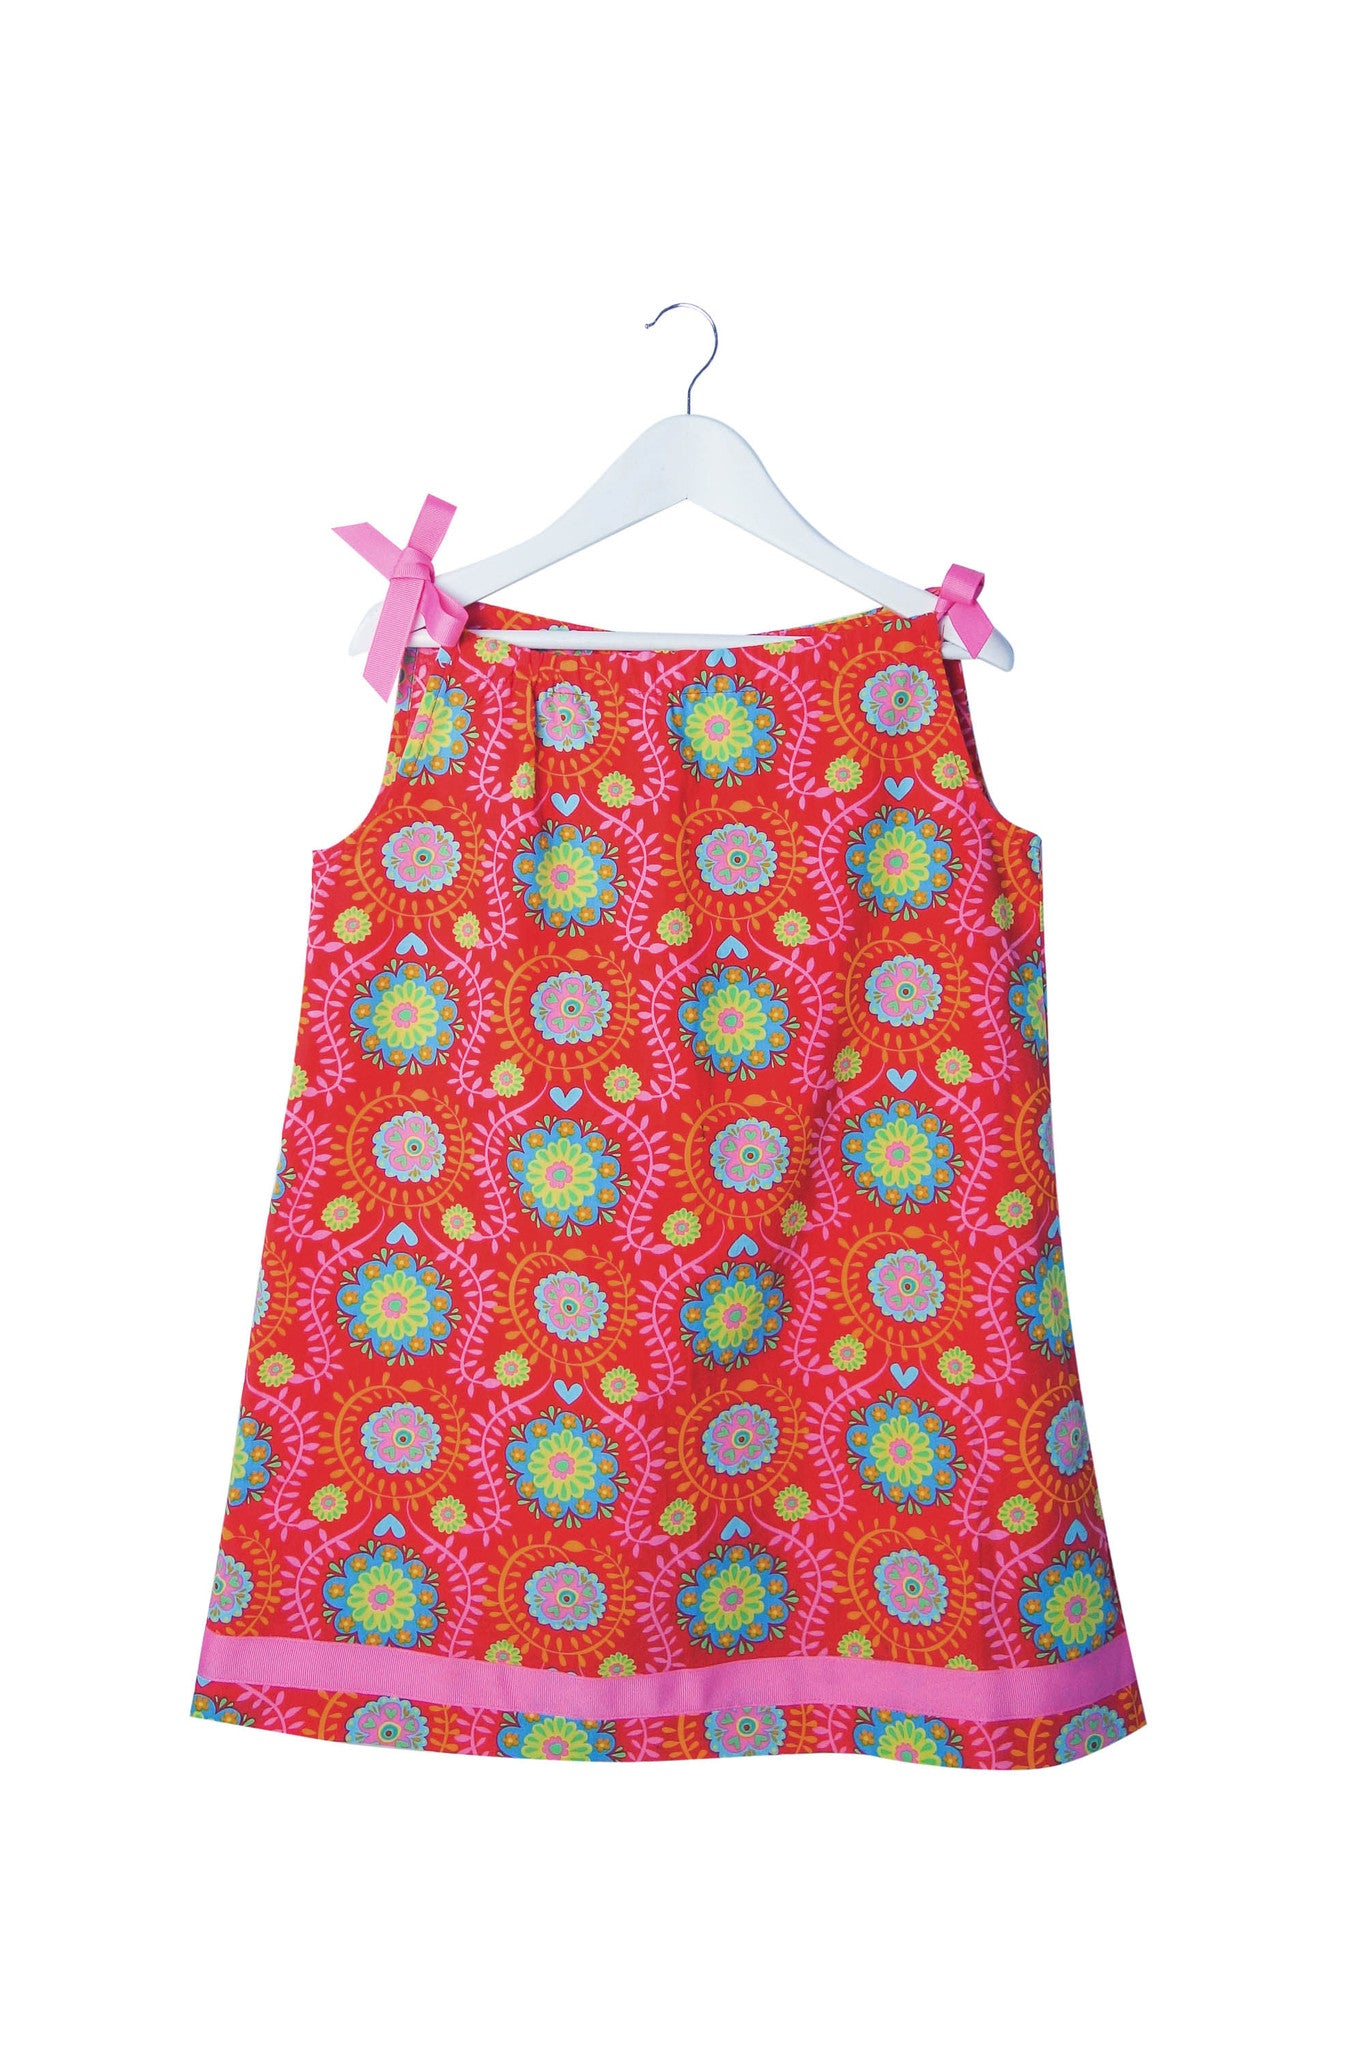 10003274 Hanna Andersson Kids~Dress 4-5T (110 cm) at Retykle